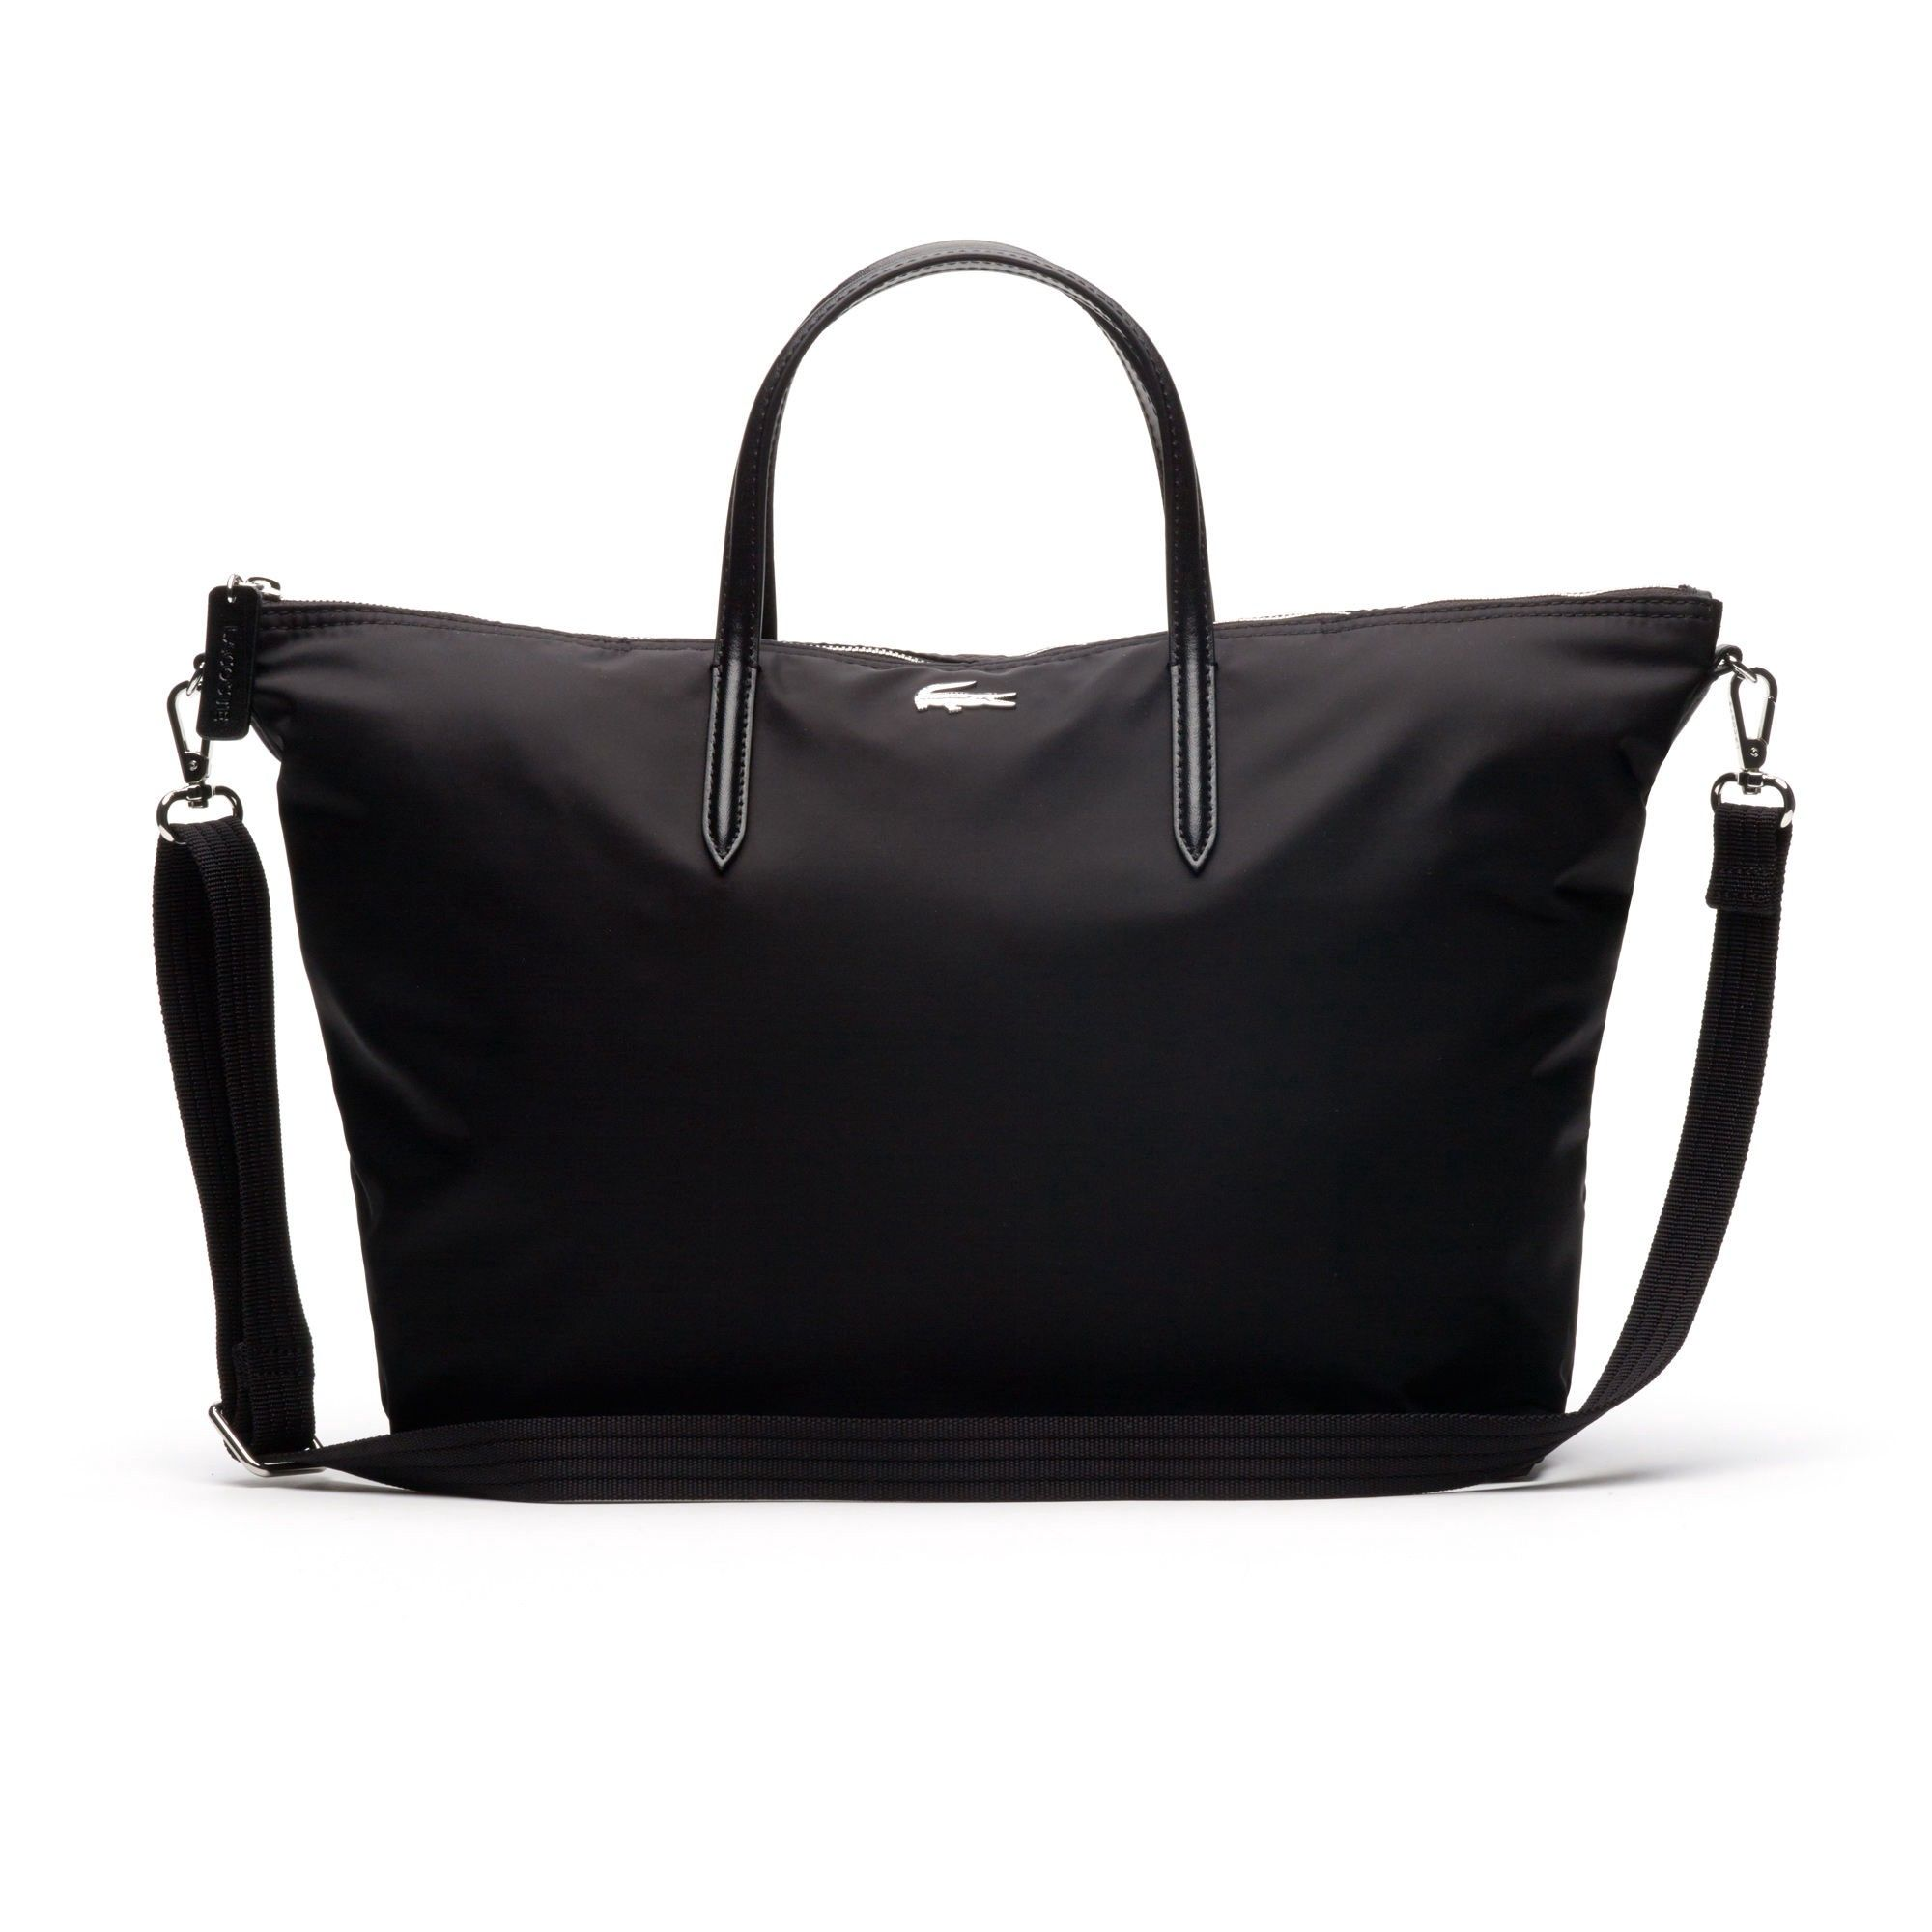 762a6d2fe1 LACOSTE Women s L.12.12 Concept Nylon Zippered Tote Bag.  lacoste  bags  shoulder  bags  hand bags  nylon  tote